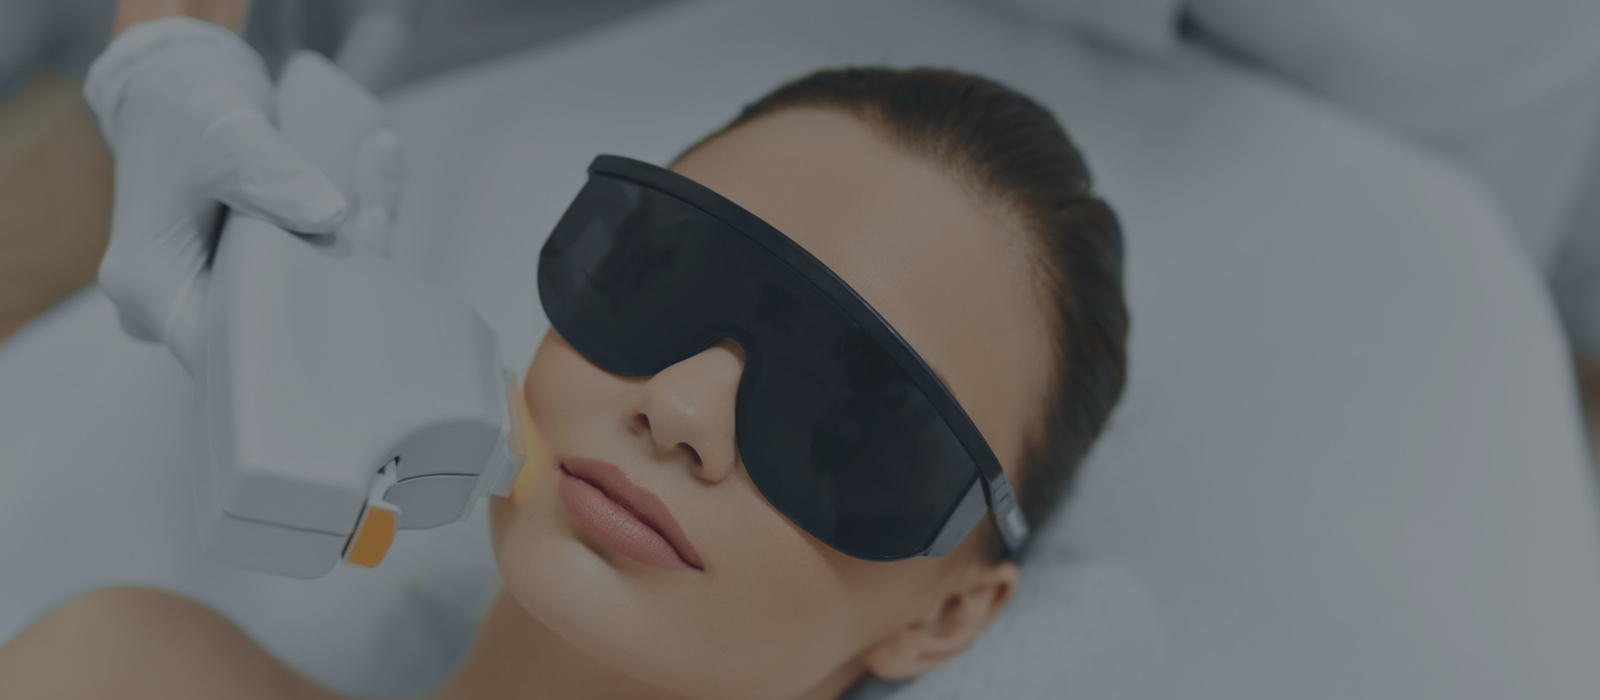 IPL Therapy and Chemical Peels: What to Expect When Treating Your Skin